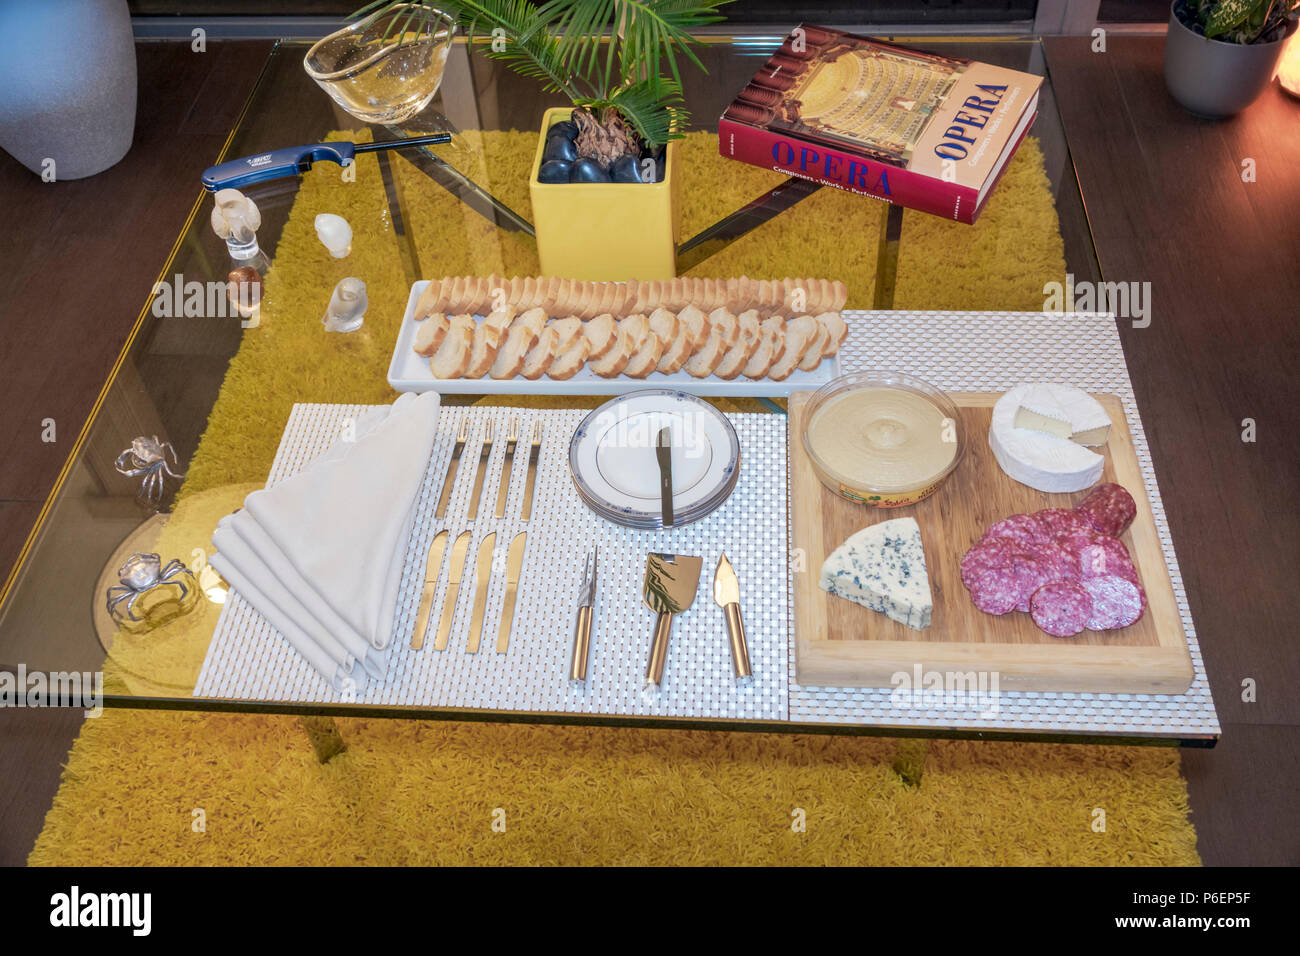 Miami Beach Florida South Bay Club high rise condominium building apartment condo unit hors d'oeuvre appetizer entertaining cheese platter tray - Stock Image